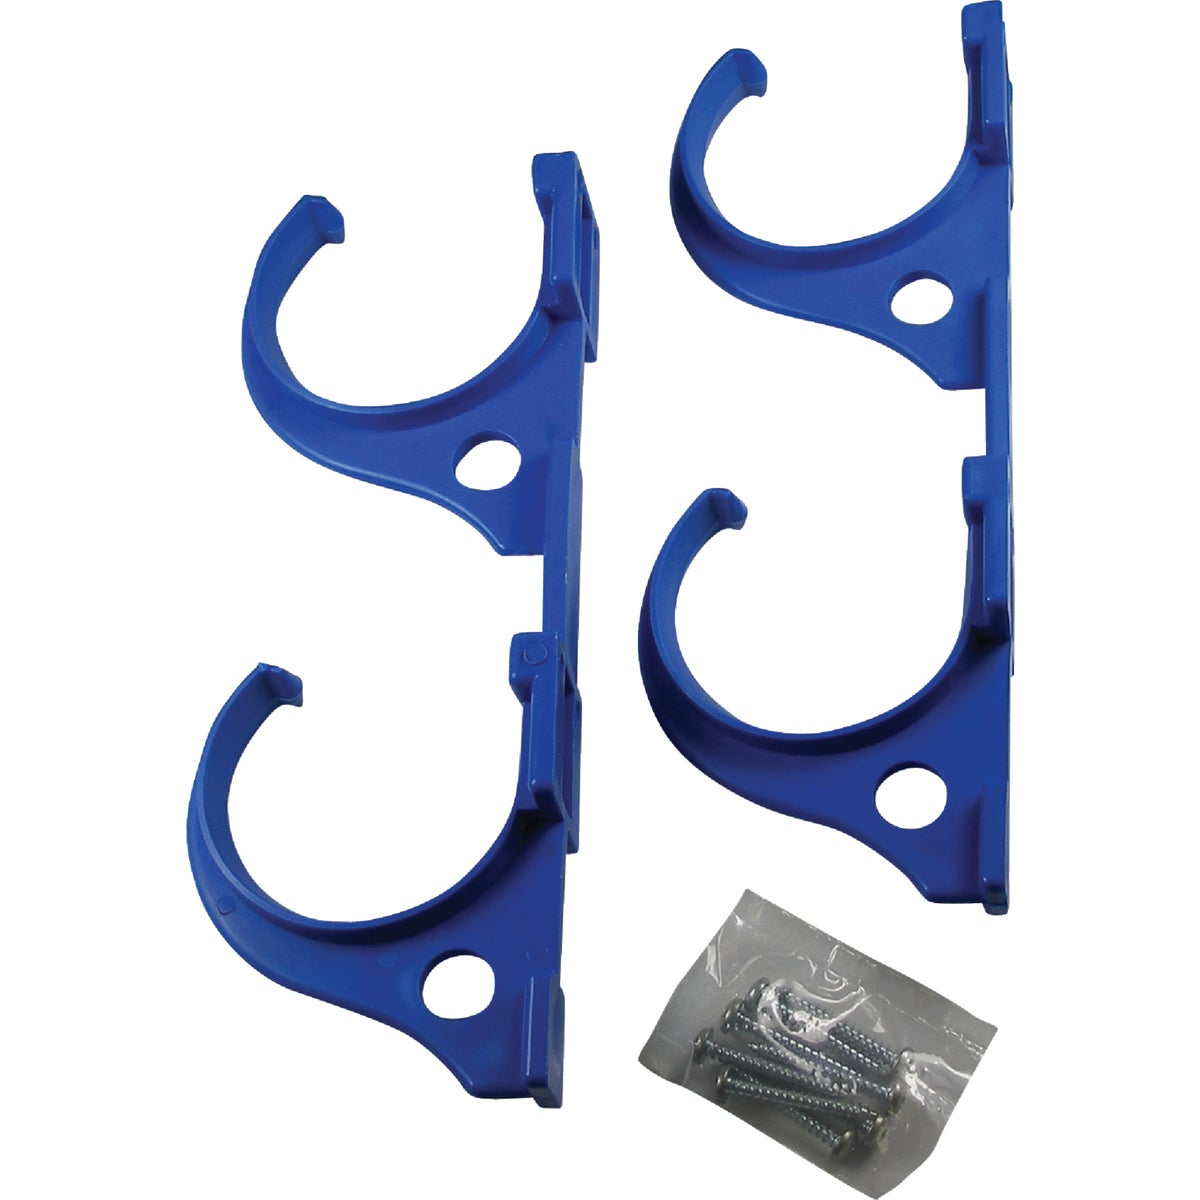 Jed Pool Tools Pole And Hose Hanger at Sears.com